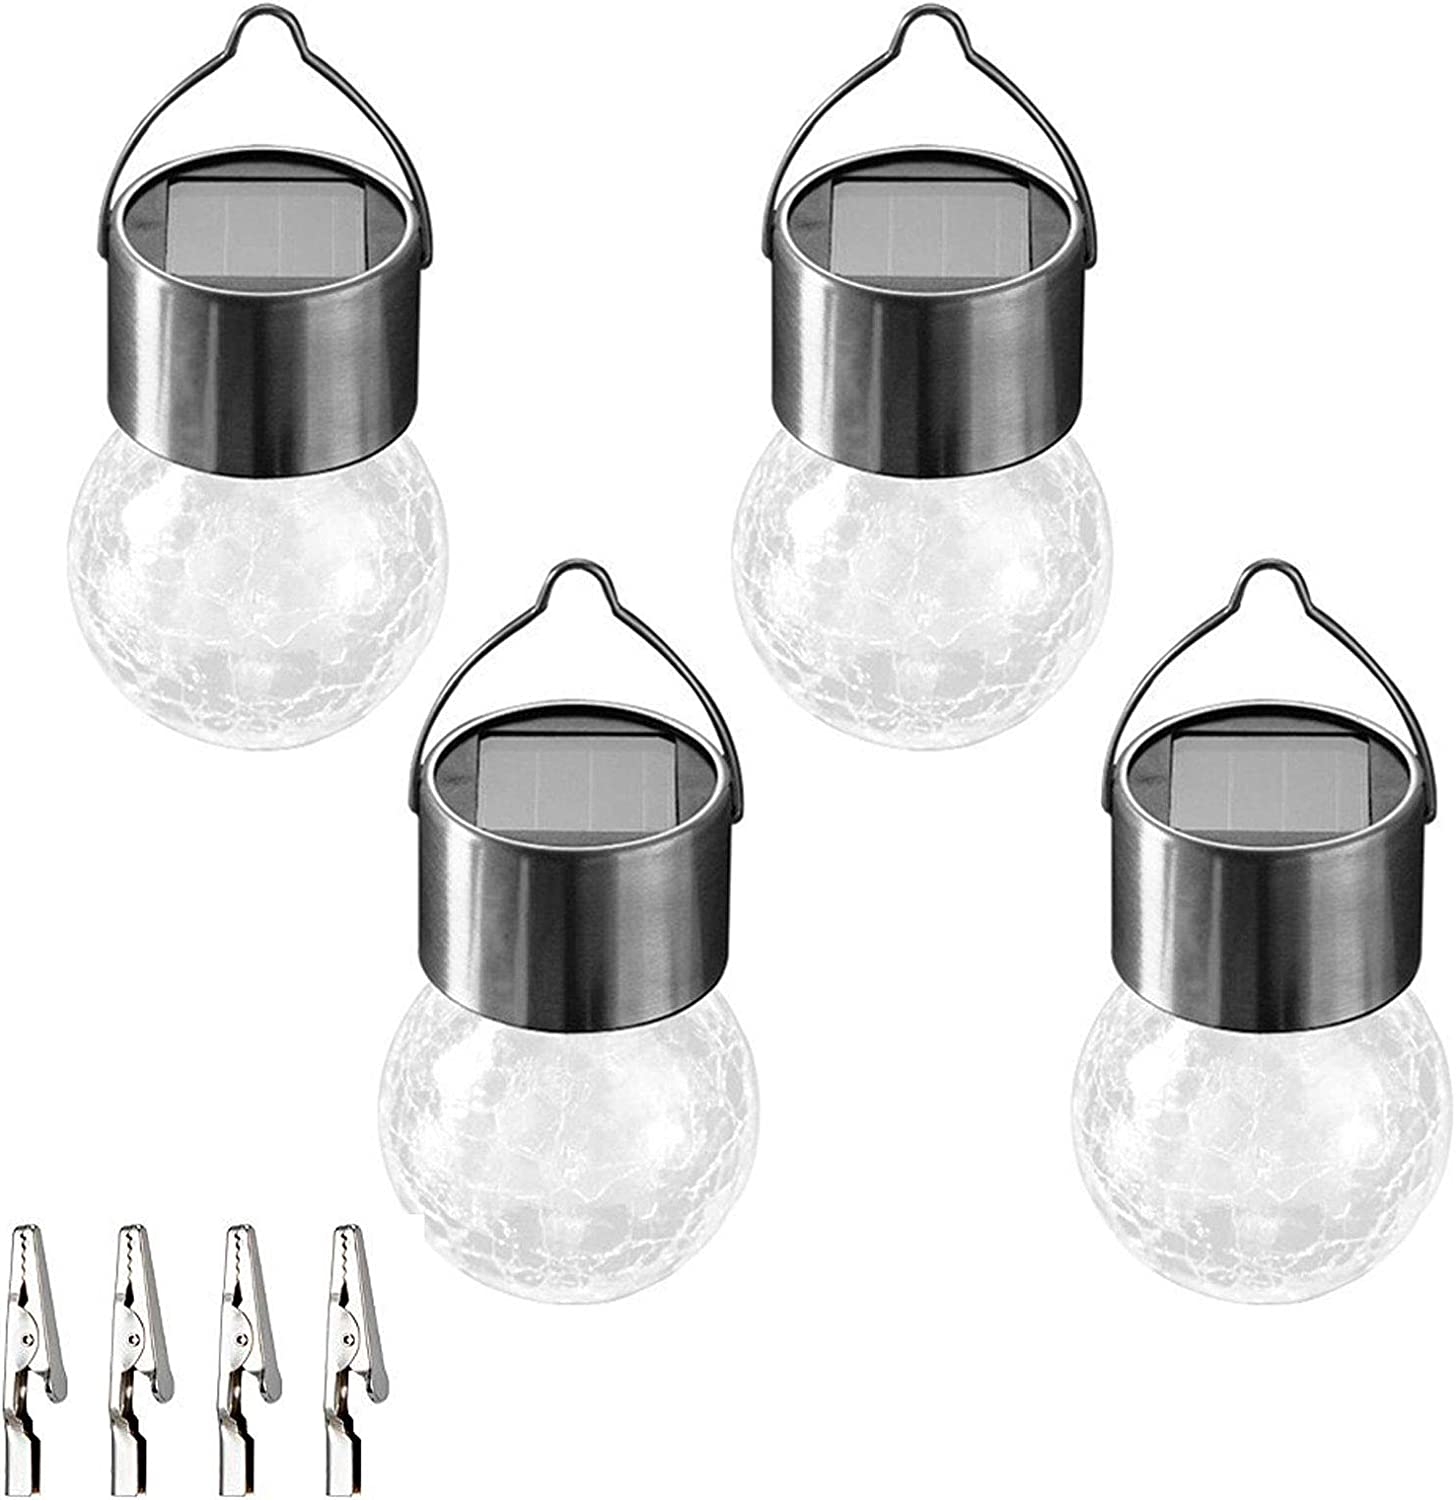 SunnyPark 4 Pack Hanging Solar Lights Outdoor, Decorative Cracked Glass Ball Lights Waterproof Solar Lanterns with Handle and Clip for Umbrella, Garden Yard, Patio, Fence, Tree, Christmas Decorations